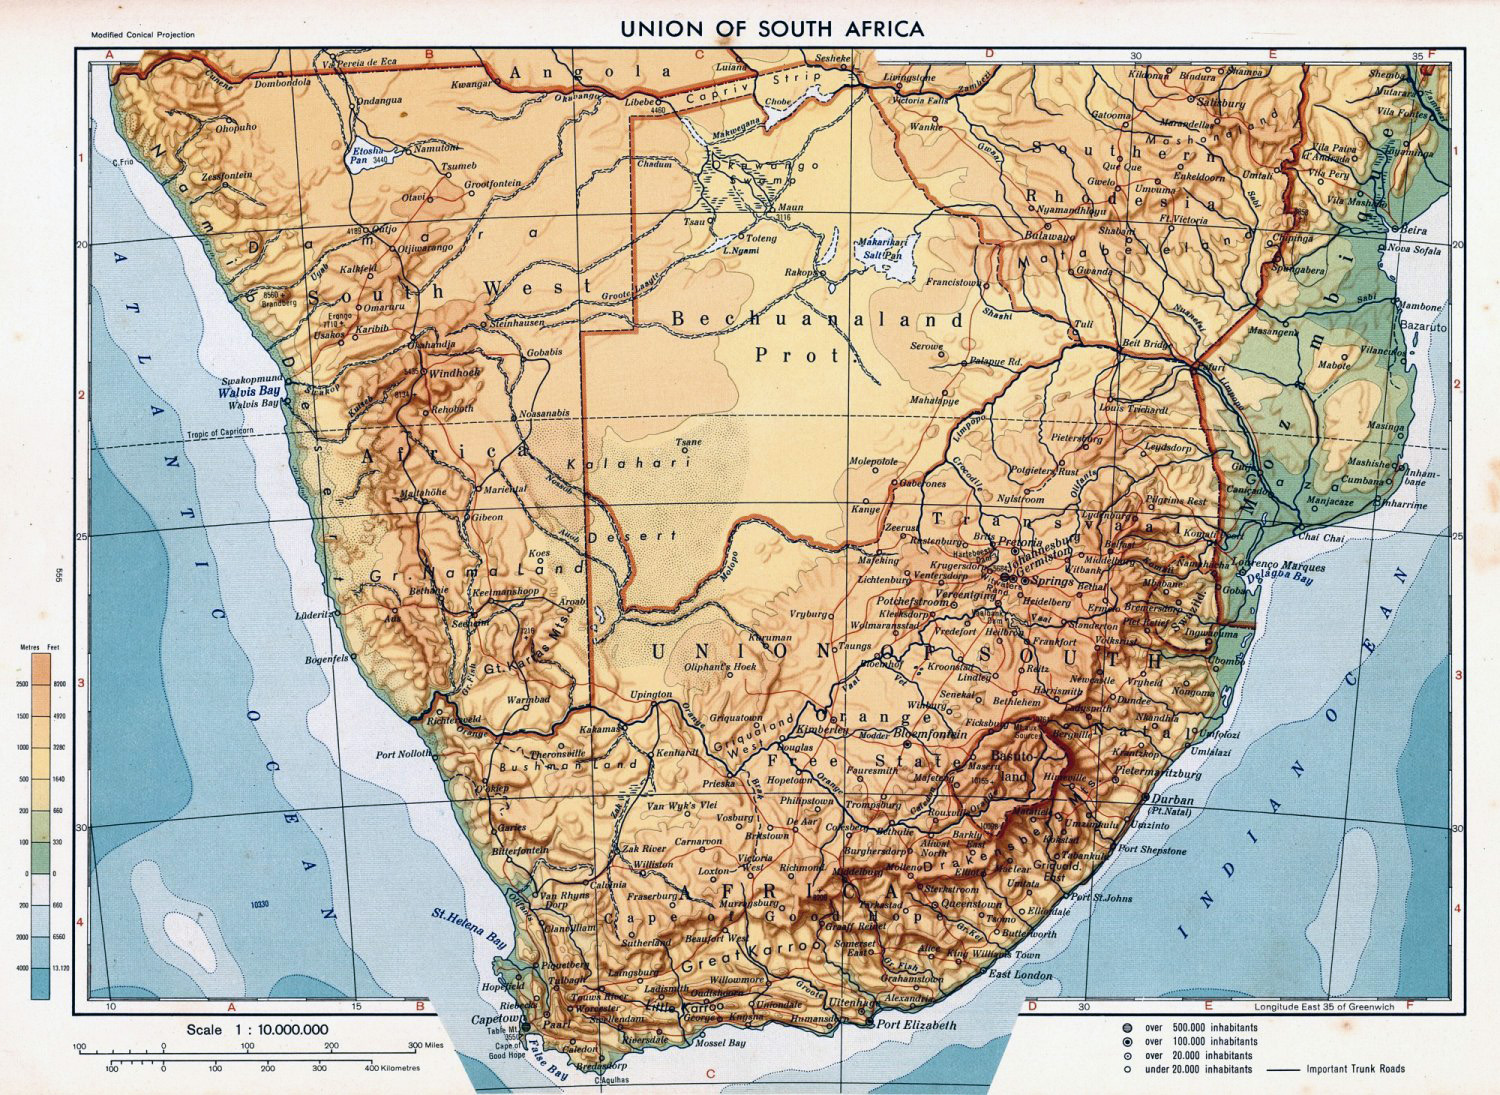 Detailed Physical Map Of Union Of South Africa South Africa - South africa map physical